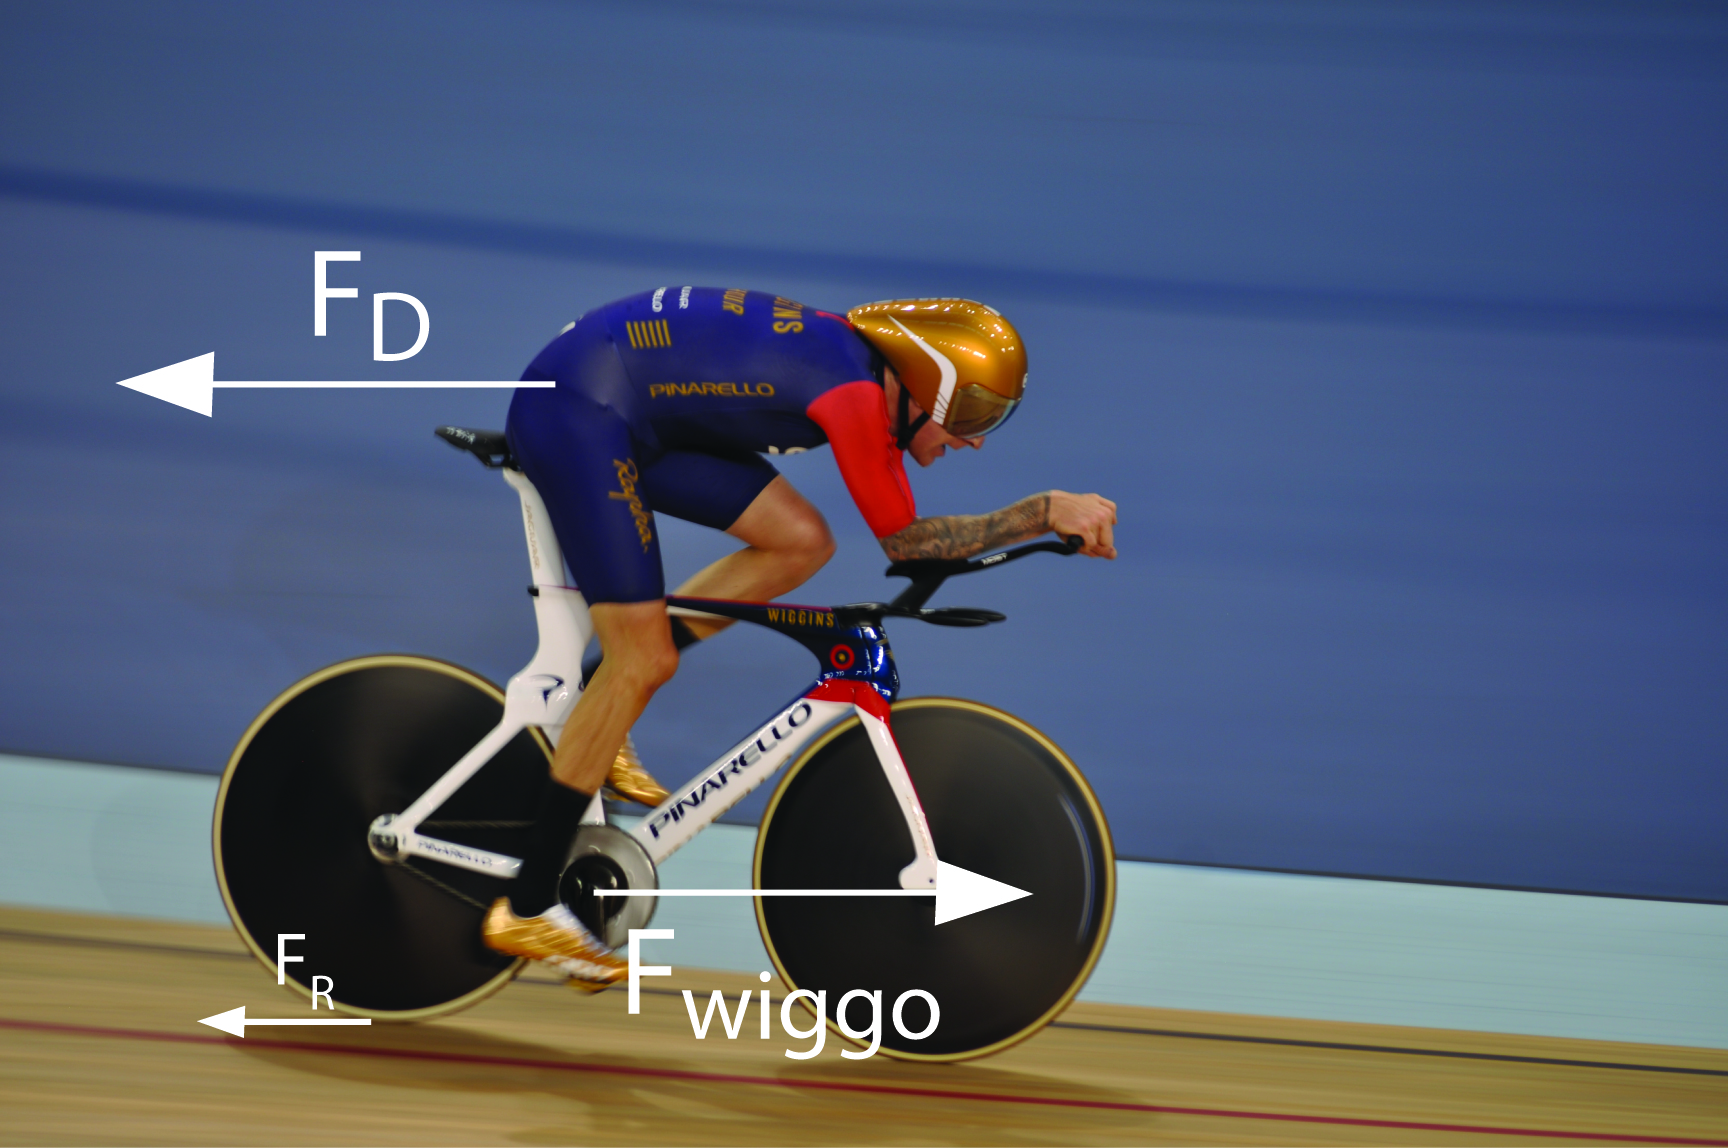 Wiggins breaks Boardman's UCI hour record on BMC velodrome (almost)